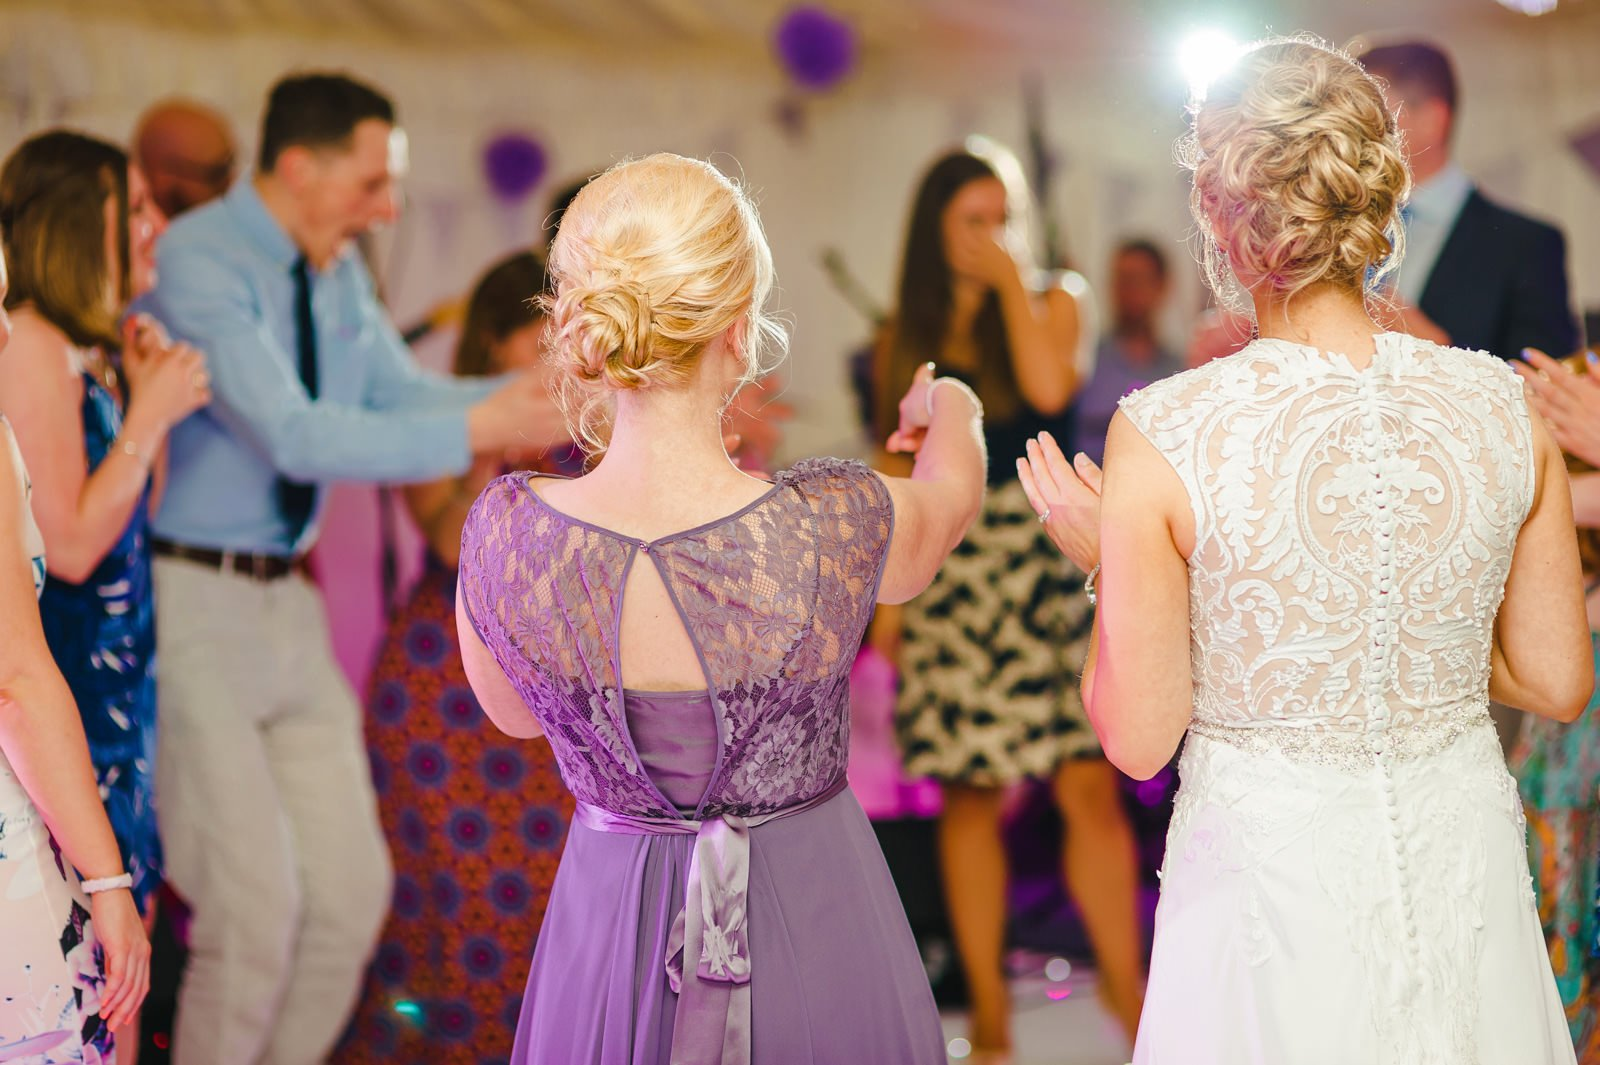 Millers Of Netley wedding, Dorrington, Shrewsbury | Emma + Ben 94